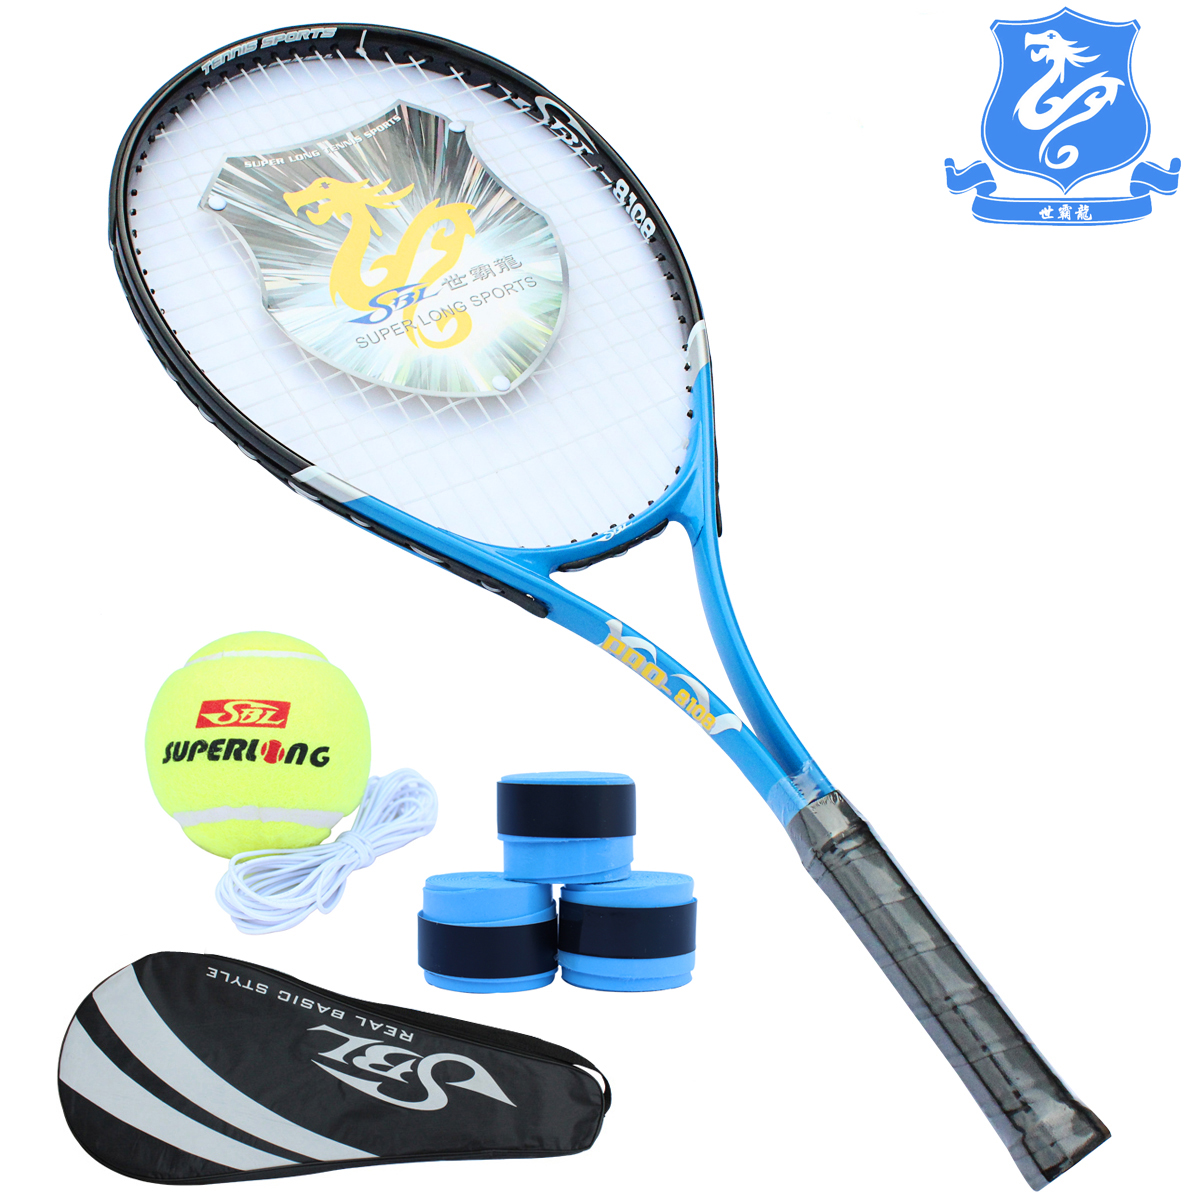 Taiwan with a genuine security balong lijian 8,108 beginners tennis rackets to tennis away with thread